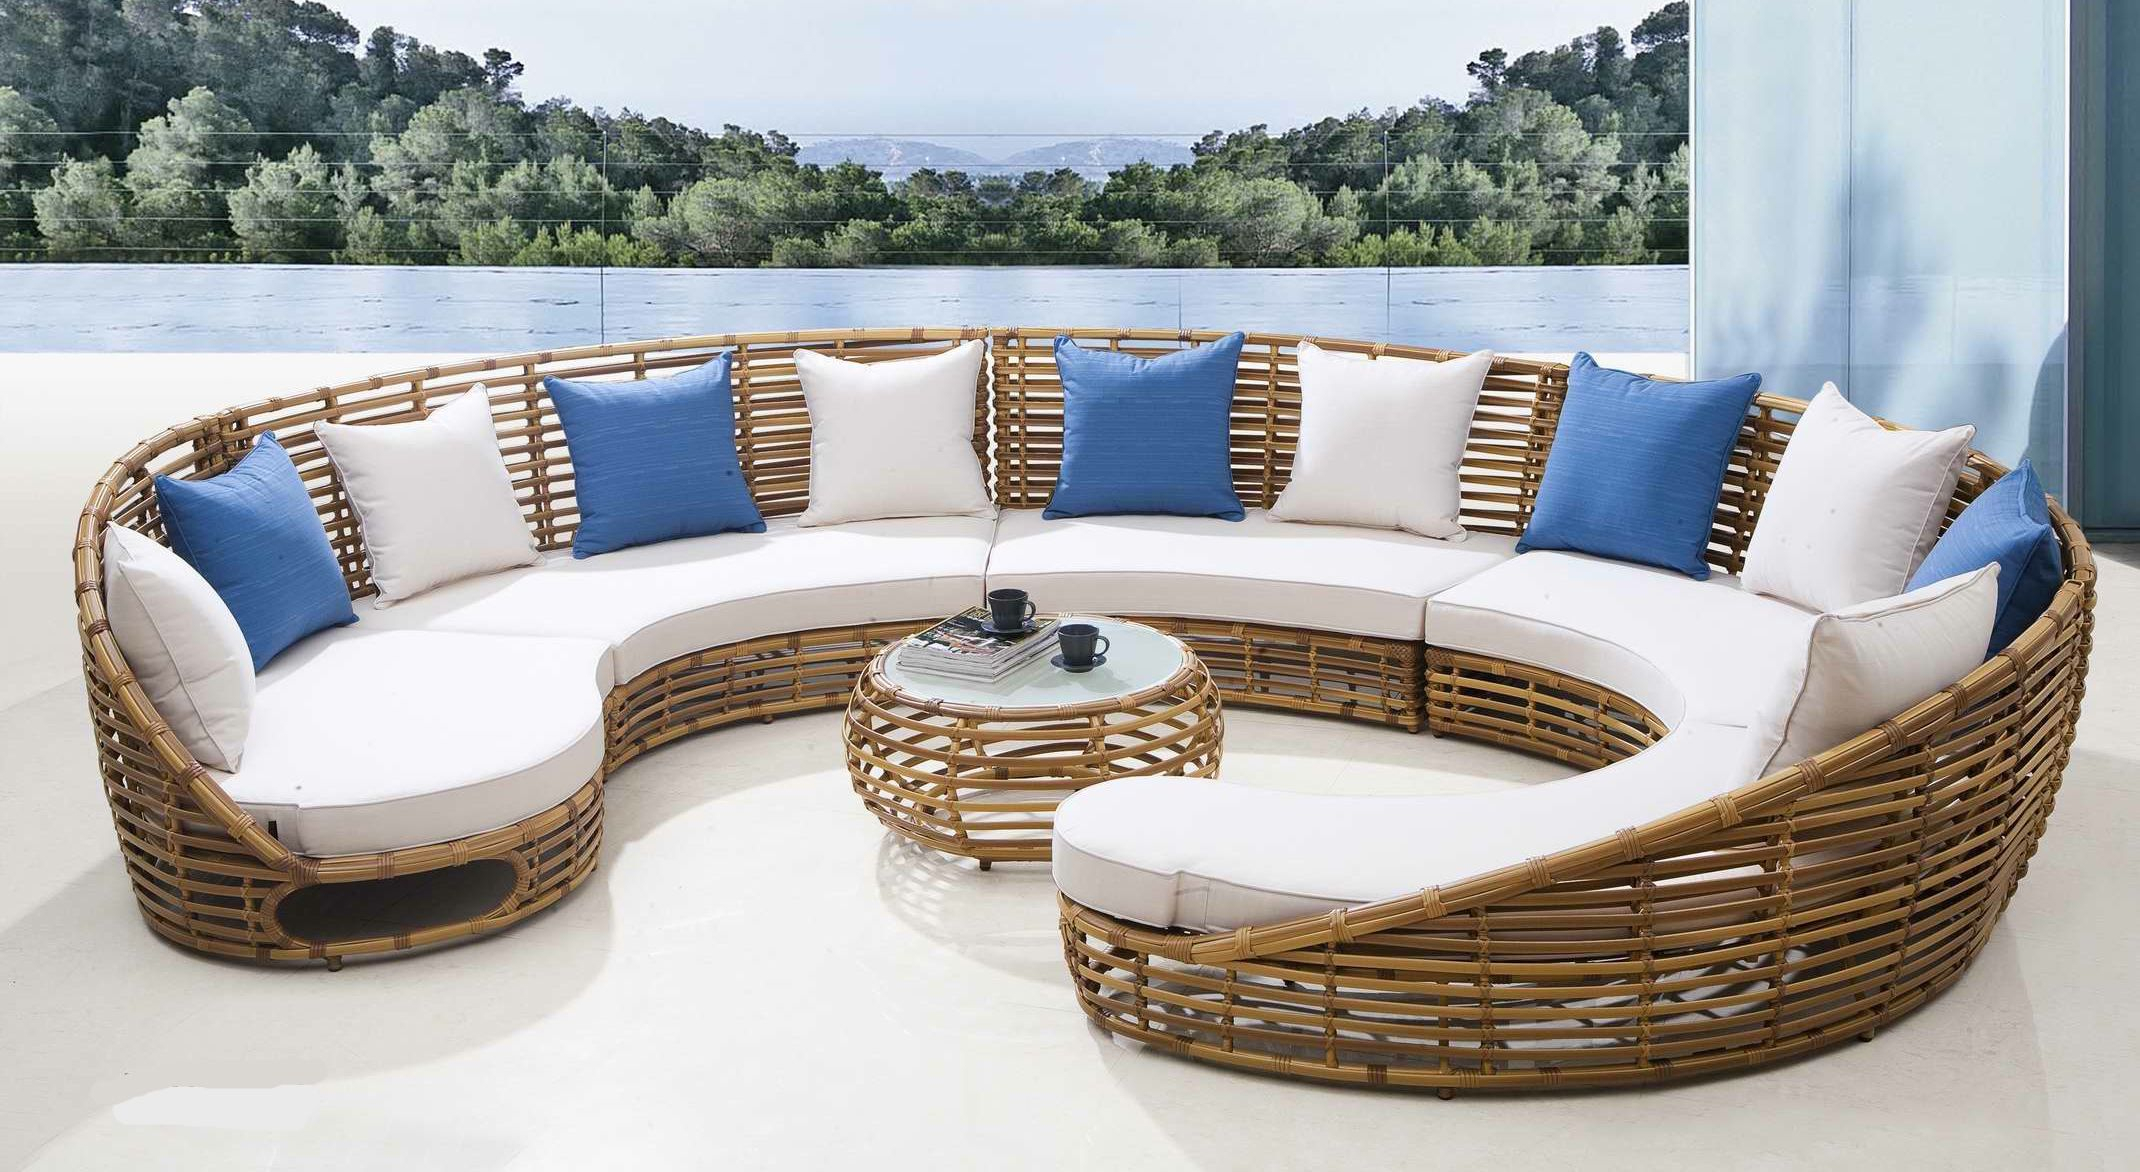 Super Chewy Patio Furniture Cushions Thick | Outdoor Wicker ... encequiconcerne Artelia Salon De Jardin